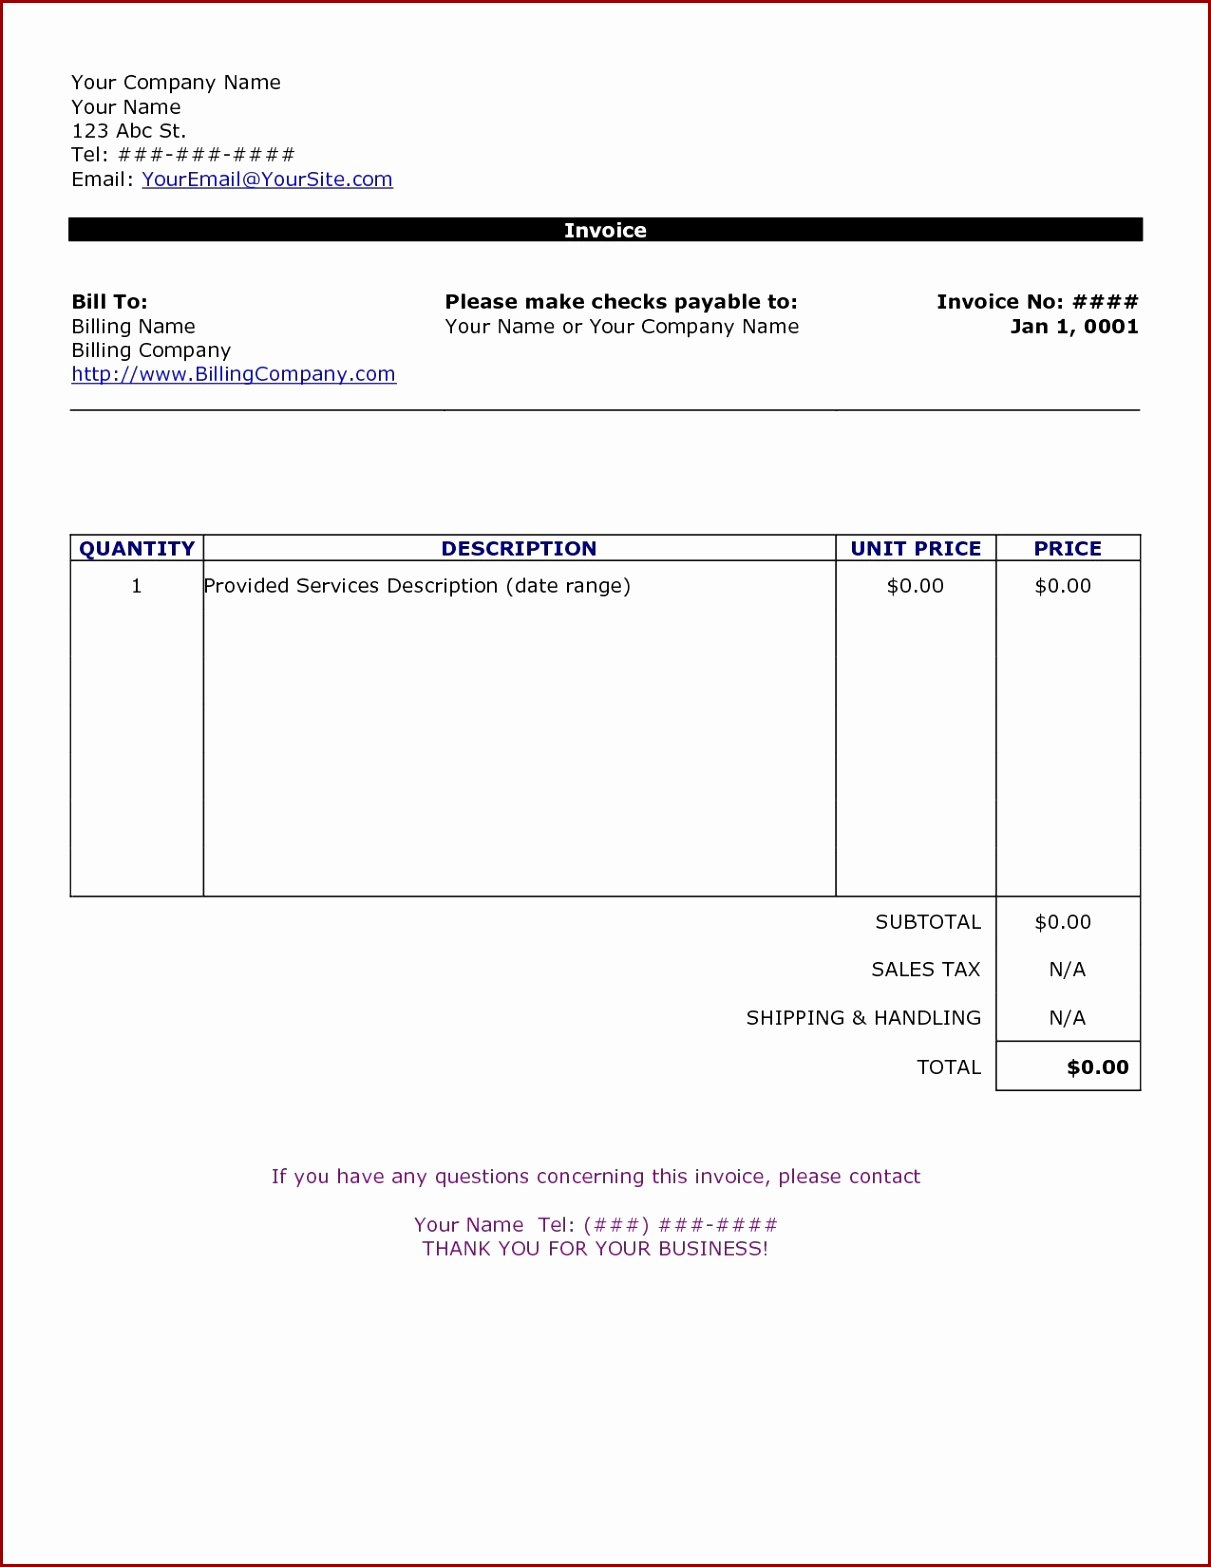 Office Invoice Template Wsfjee Templatezet Libreoffice Download Rent With Libreoffice Invoice Template